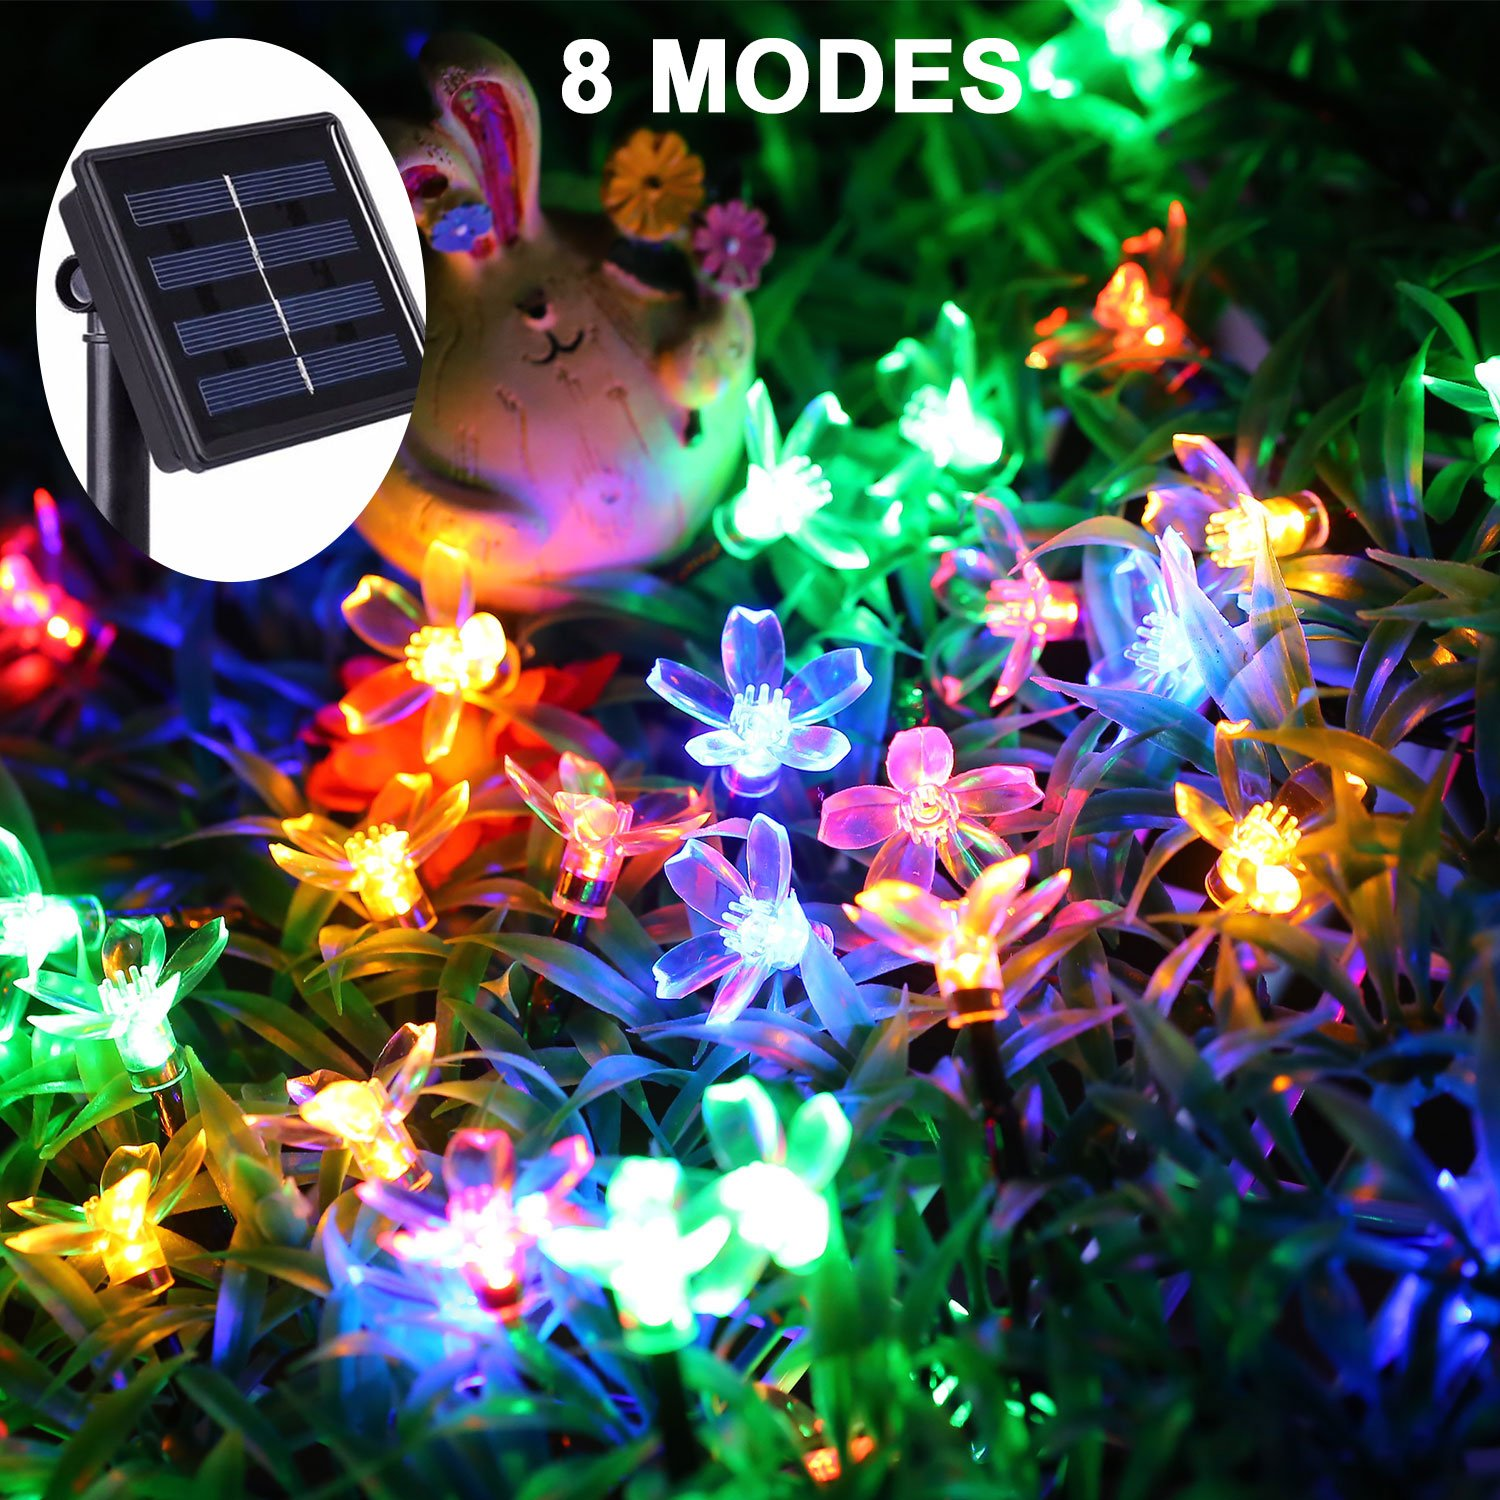 JMEXSUSS 8 Modes 50 LED 30.7Ft Waterproof Solar Flower Blossom String Fairy Decorative Light for Outdoor, Indoor, Garden, Patio, Yard, Home, Christmas Tree, Parties (Flower Blossom, Multicolor)